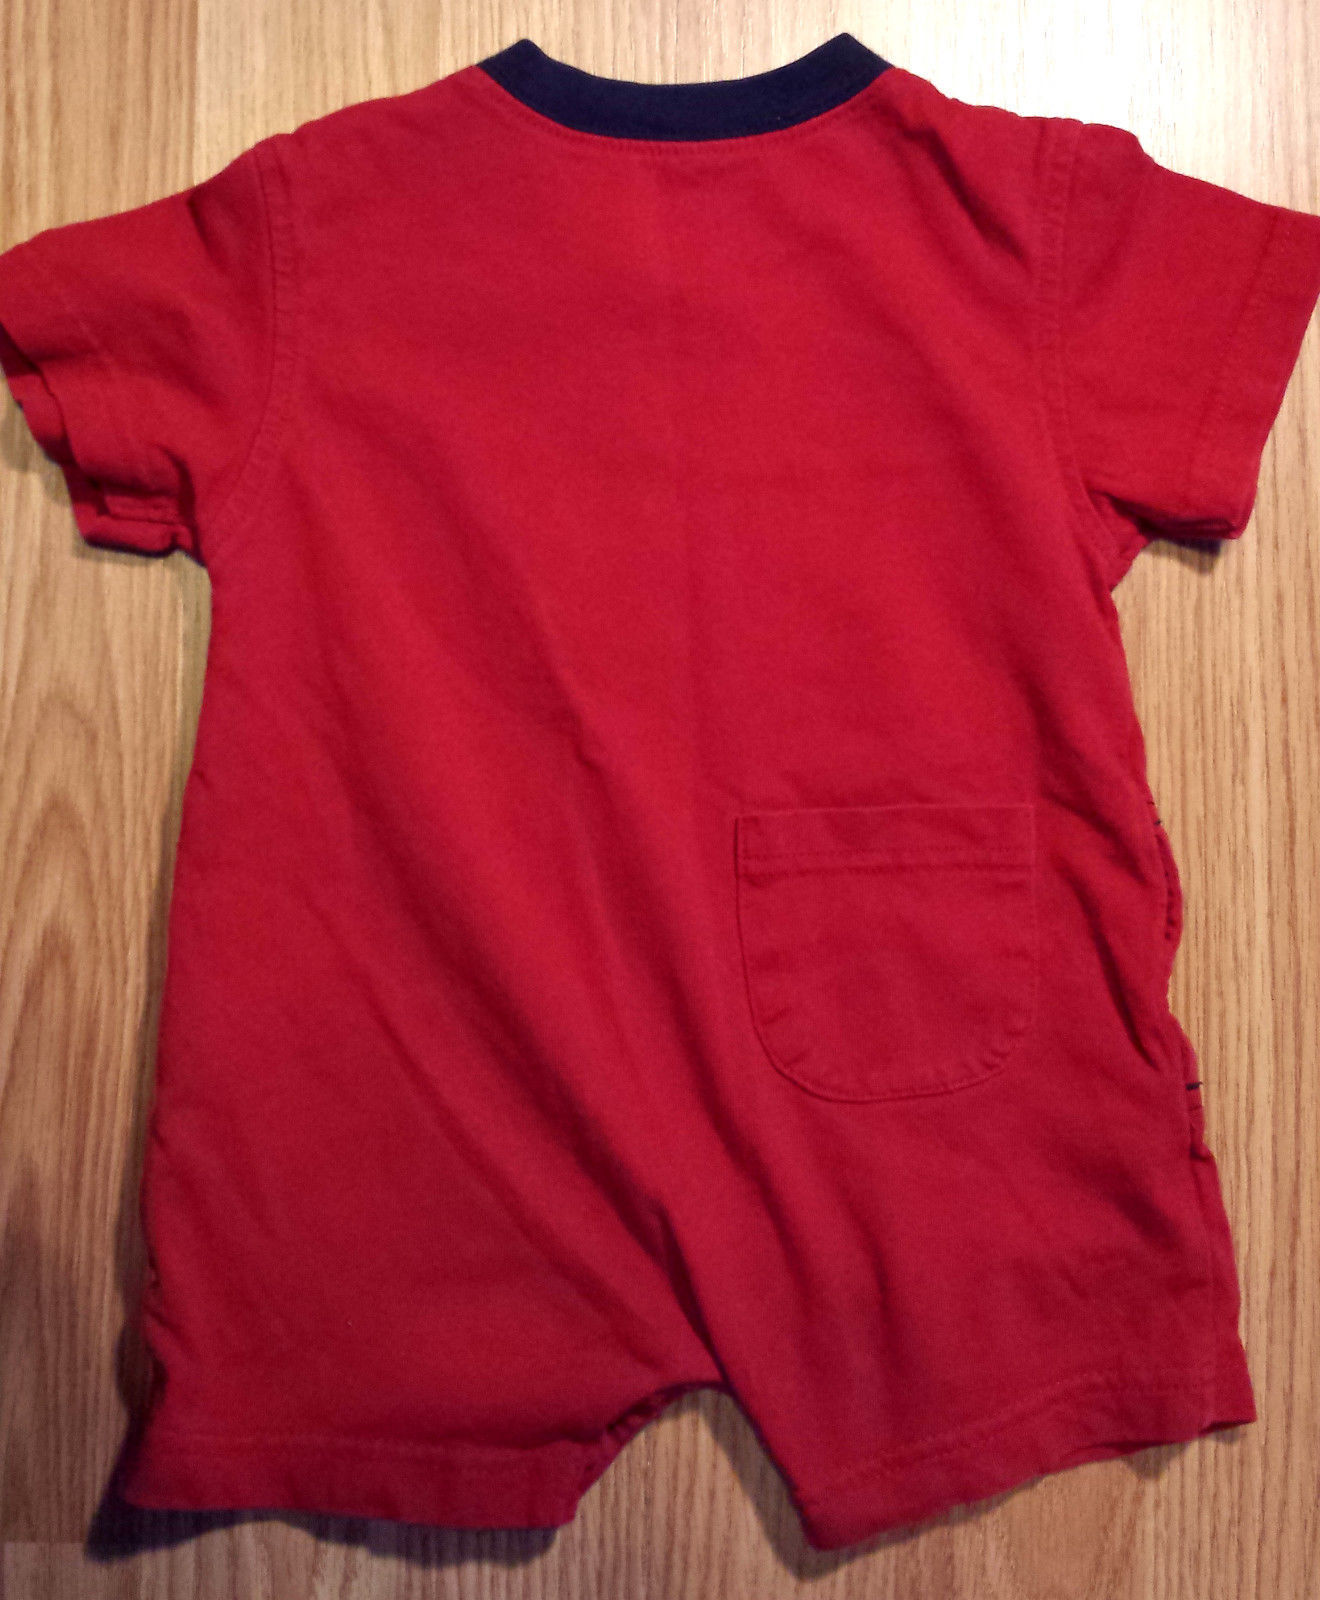 """Boy's Size 6M 3-6 Months One Piece Carter's Outfit Red """"Superhero"""" Puppy Romper"""